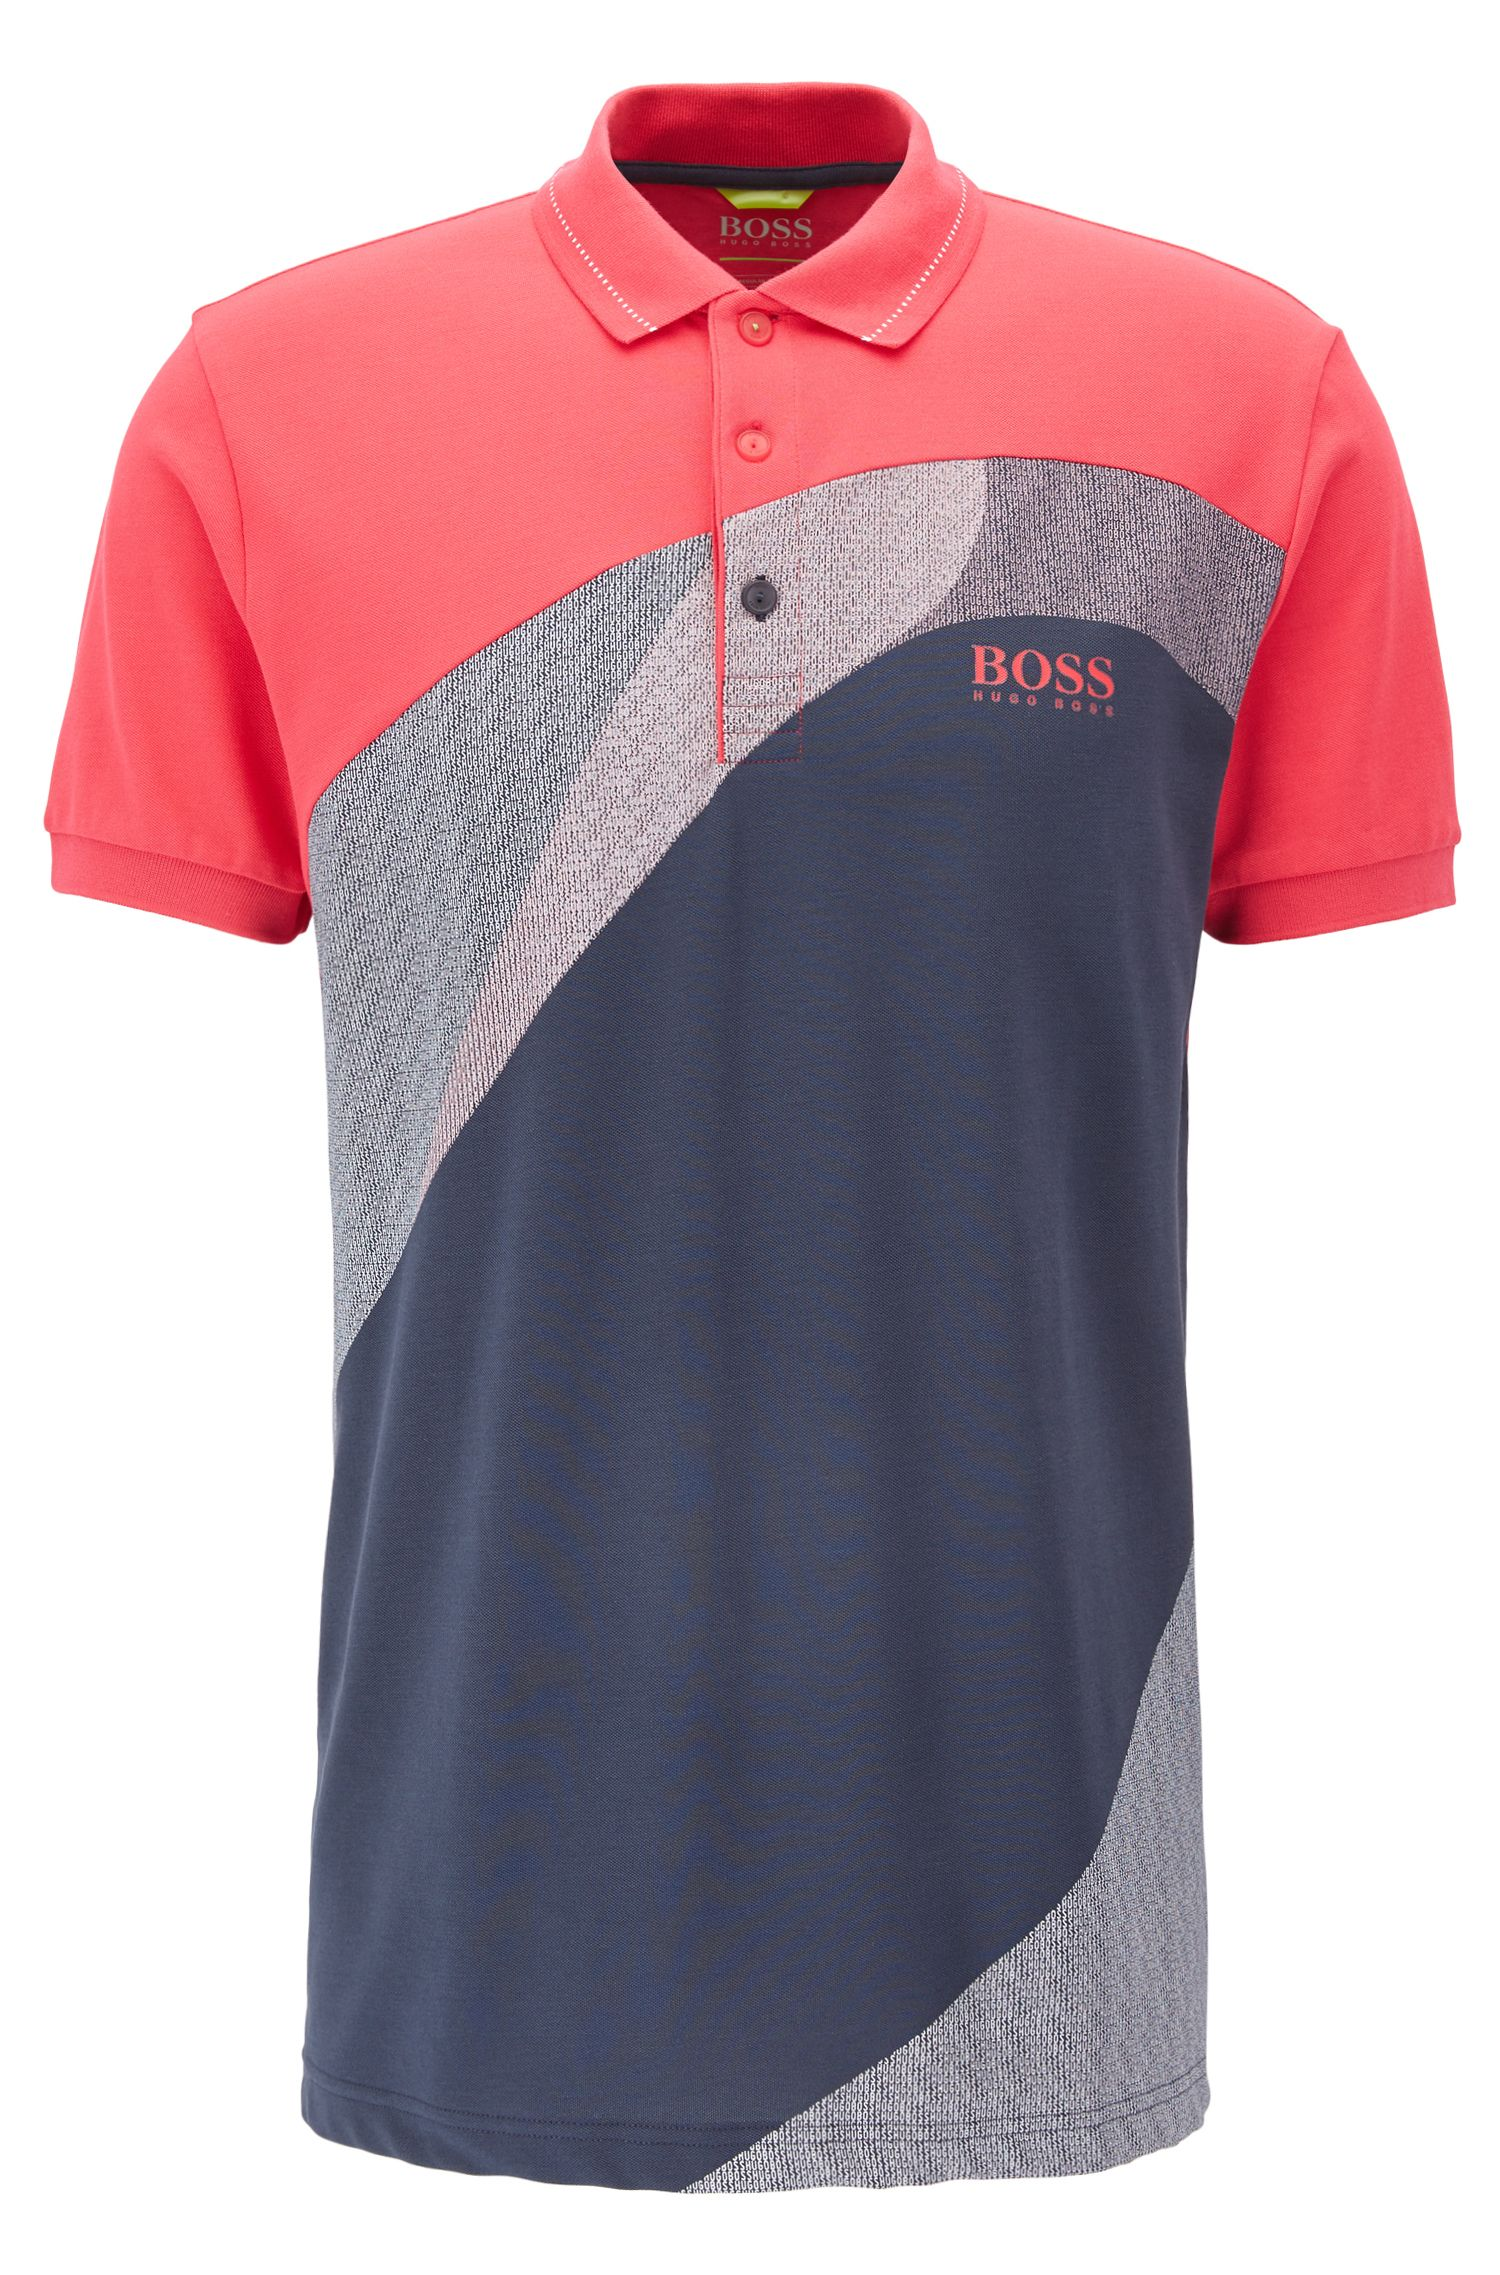 Cotton-blend polo shirt with S.Café®